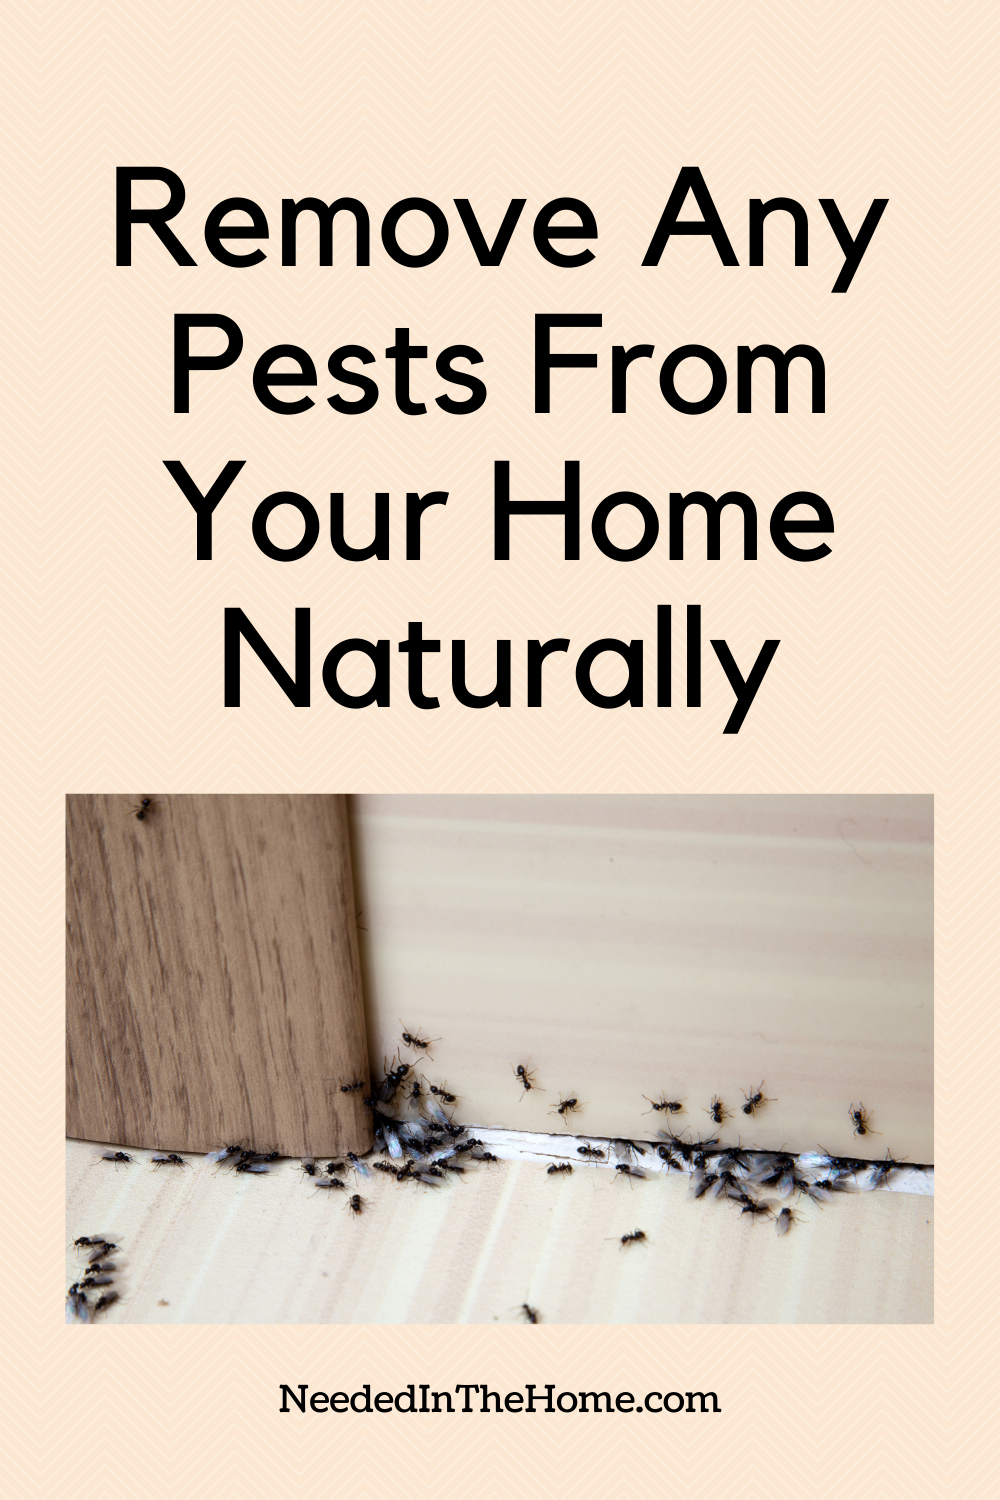 pinterest-pin-description remove any pests from your home naturally ants crawling on wall floor neededinthehome